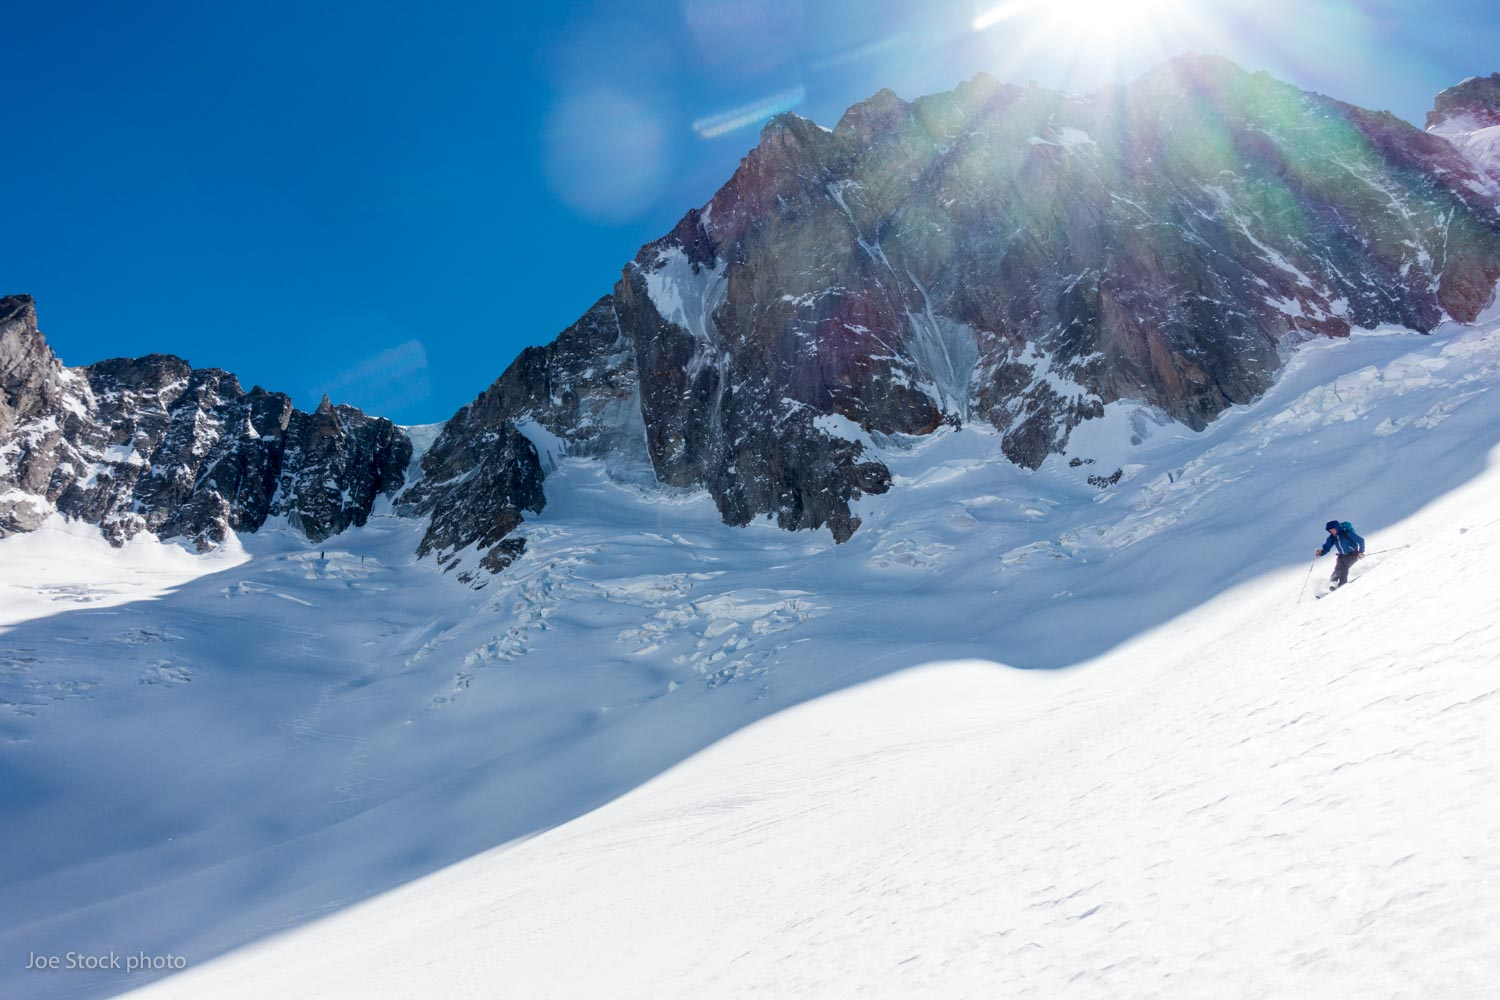 Eric Larson skiing below the 4,000-foot north face of the Grandes Jorasses, one of the seven great north faces of the Alps.